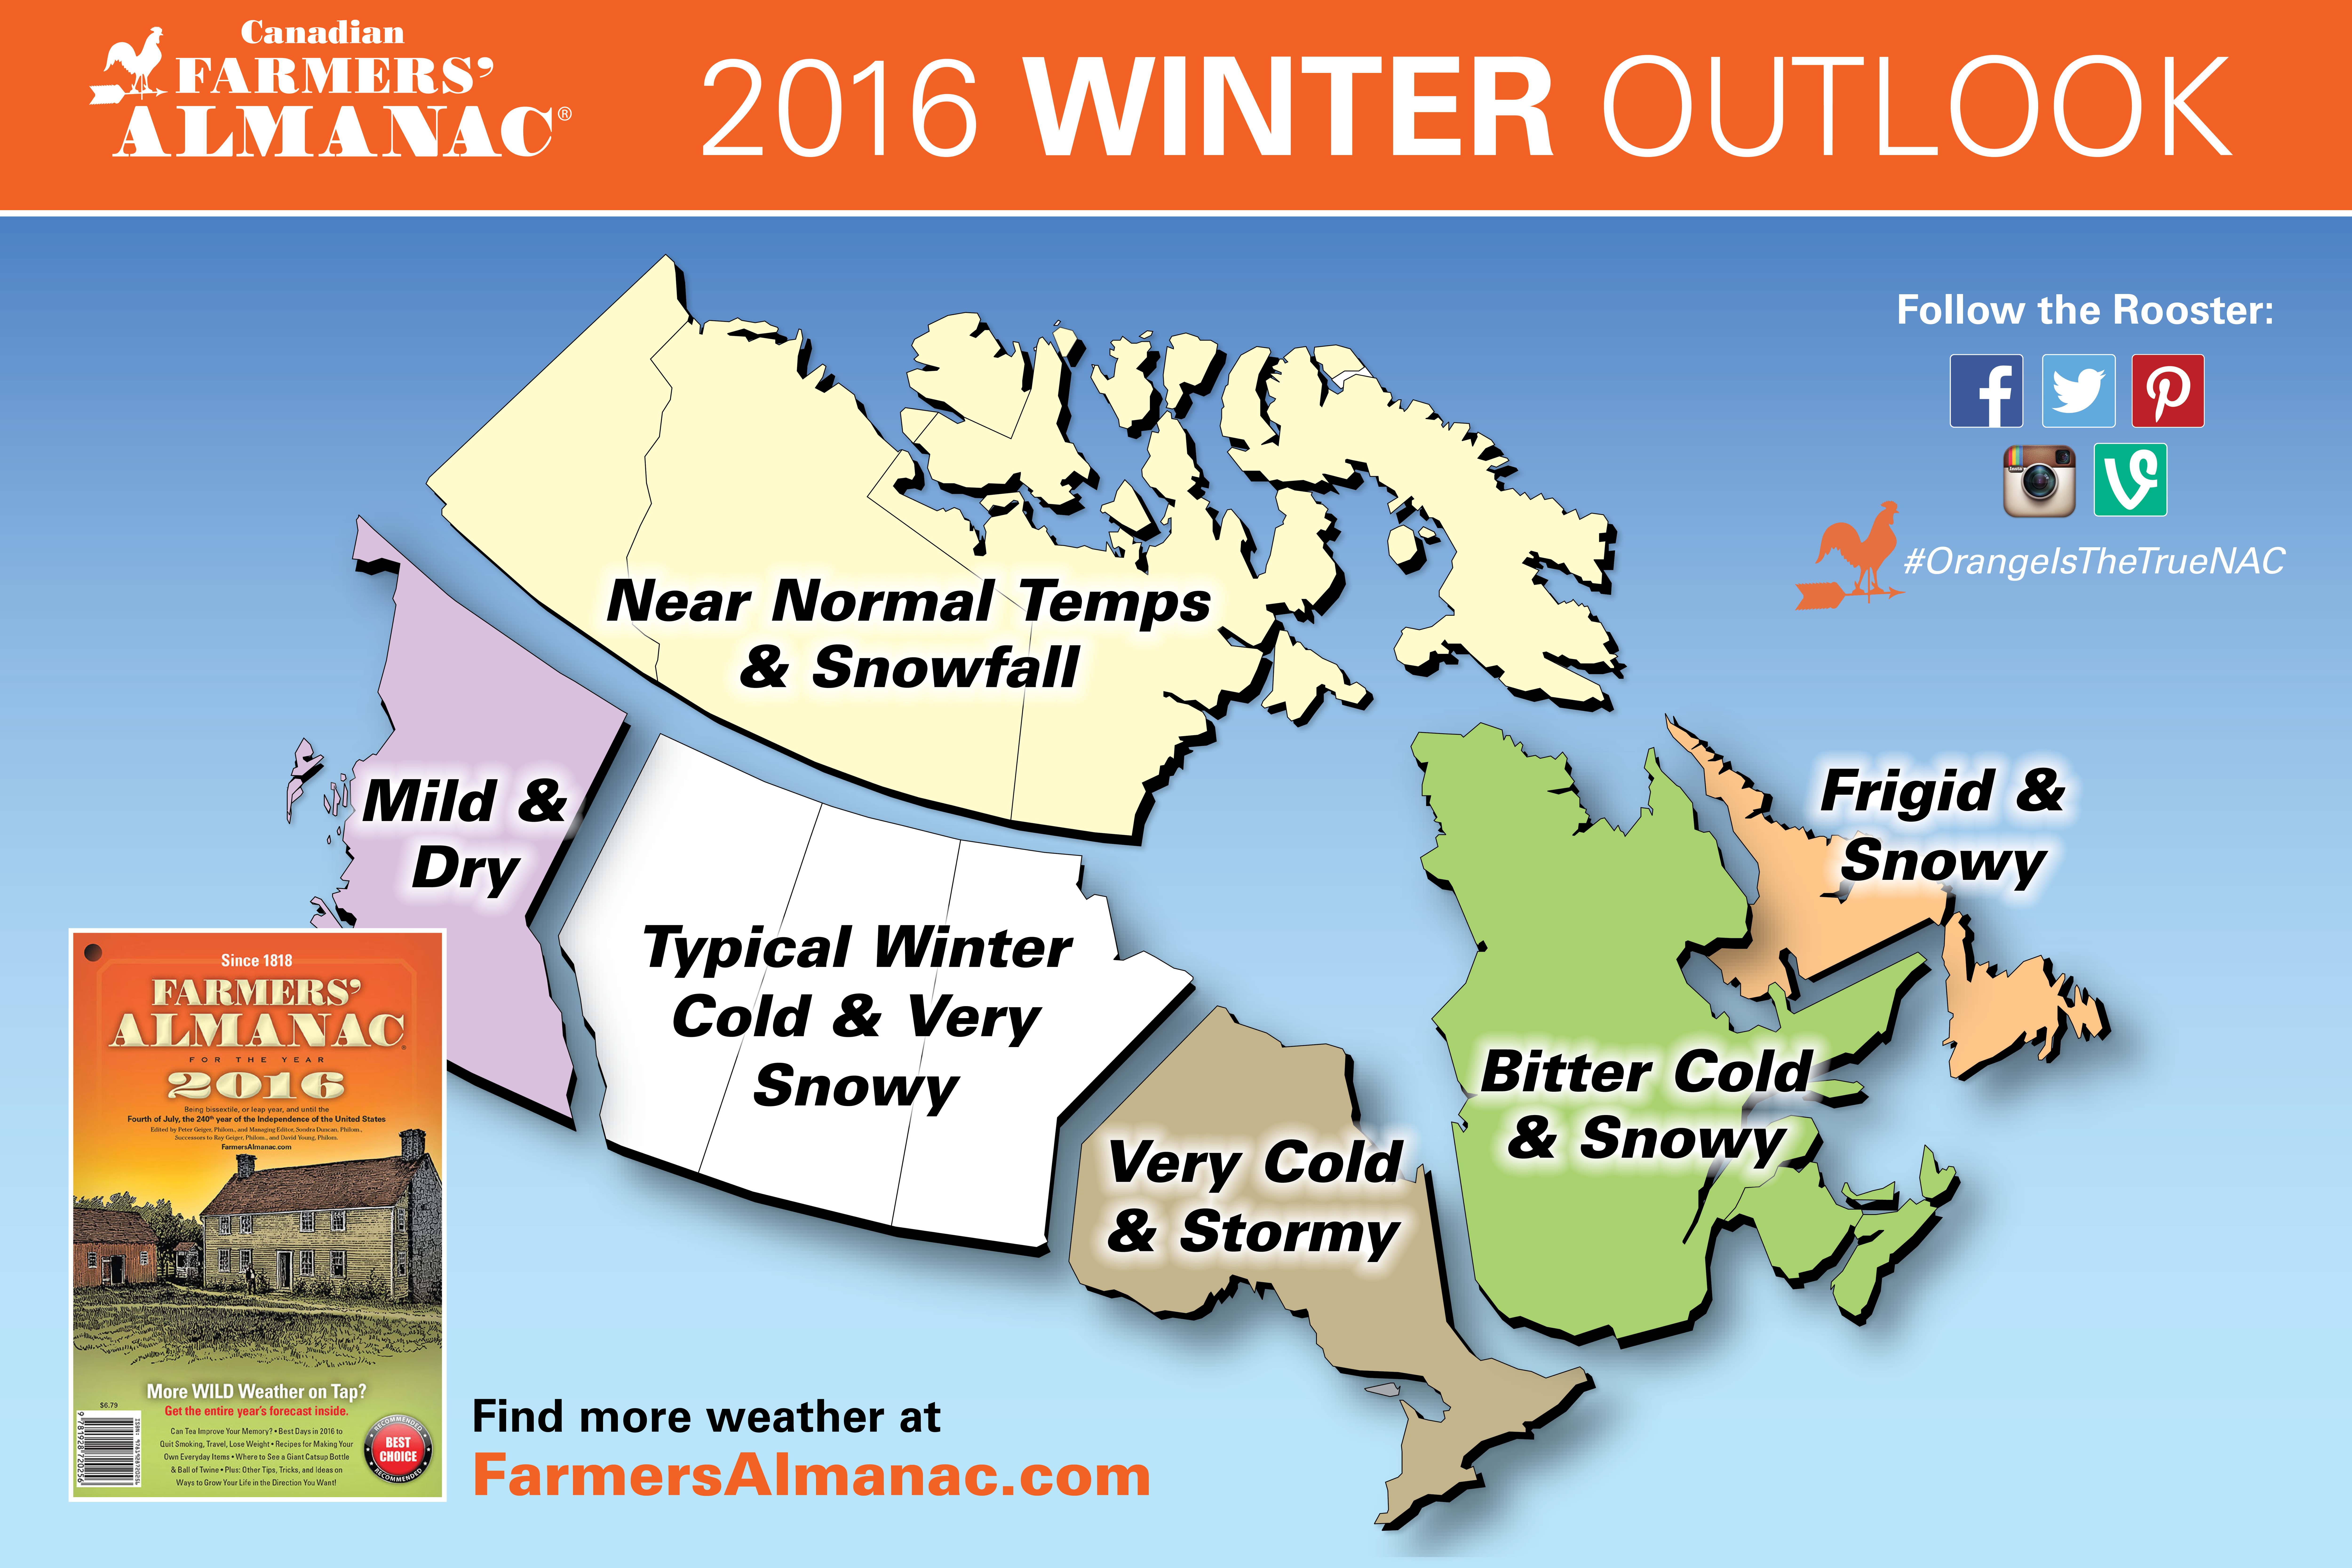 2016 Canadian Winter Outlook by the Farmers Almanac: - SnowBrains